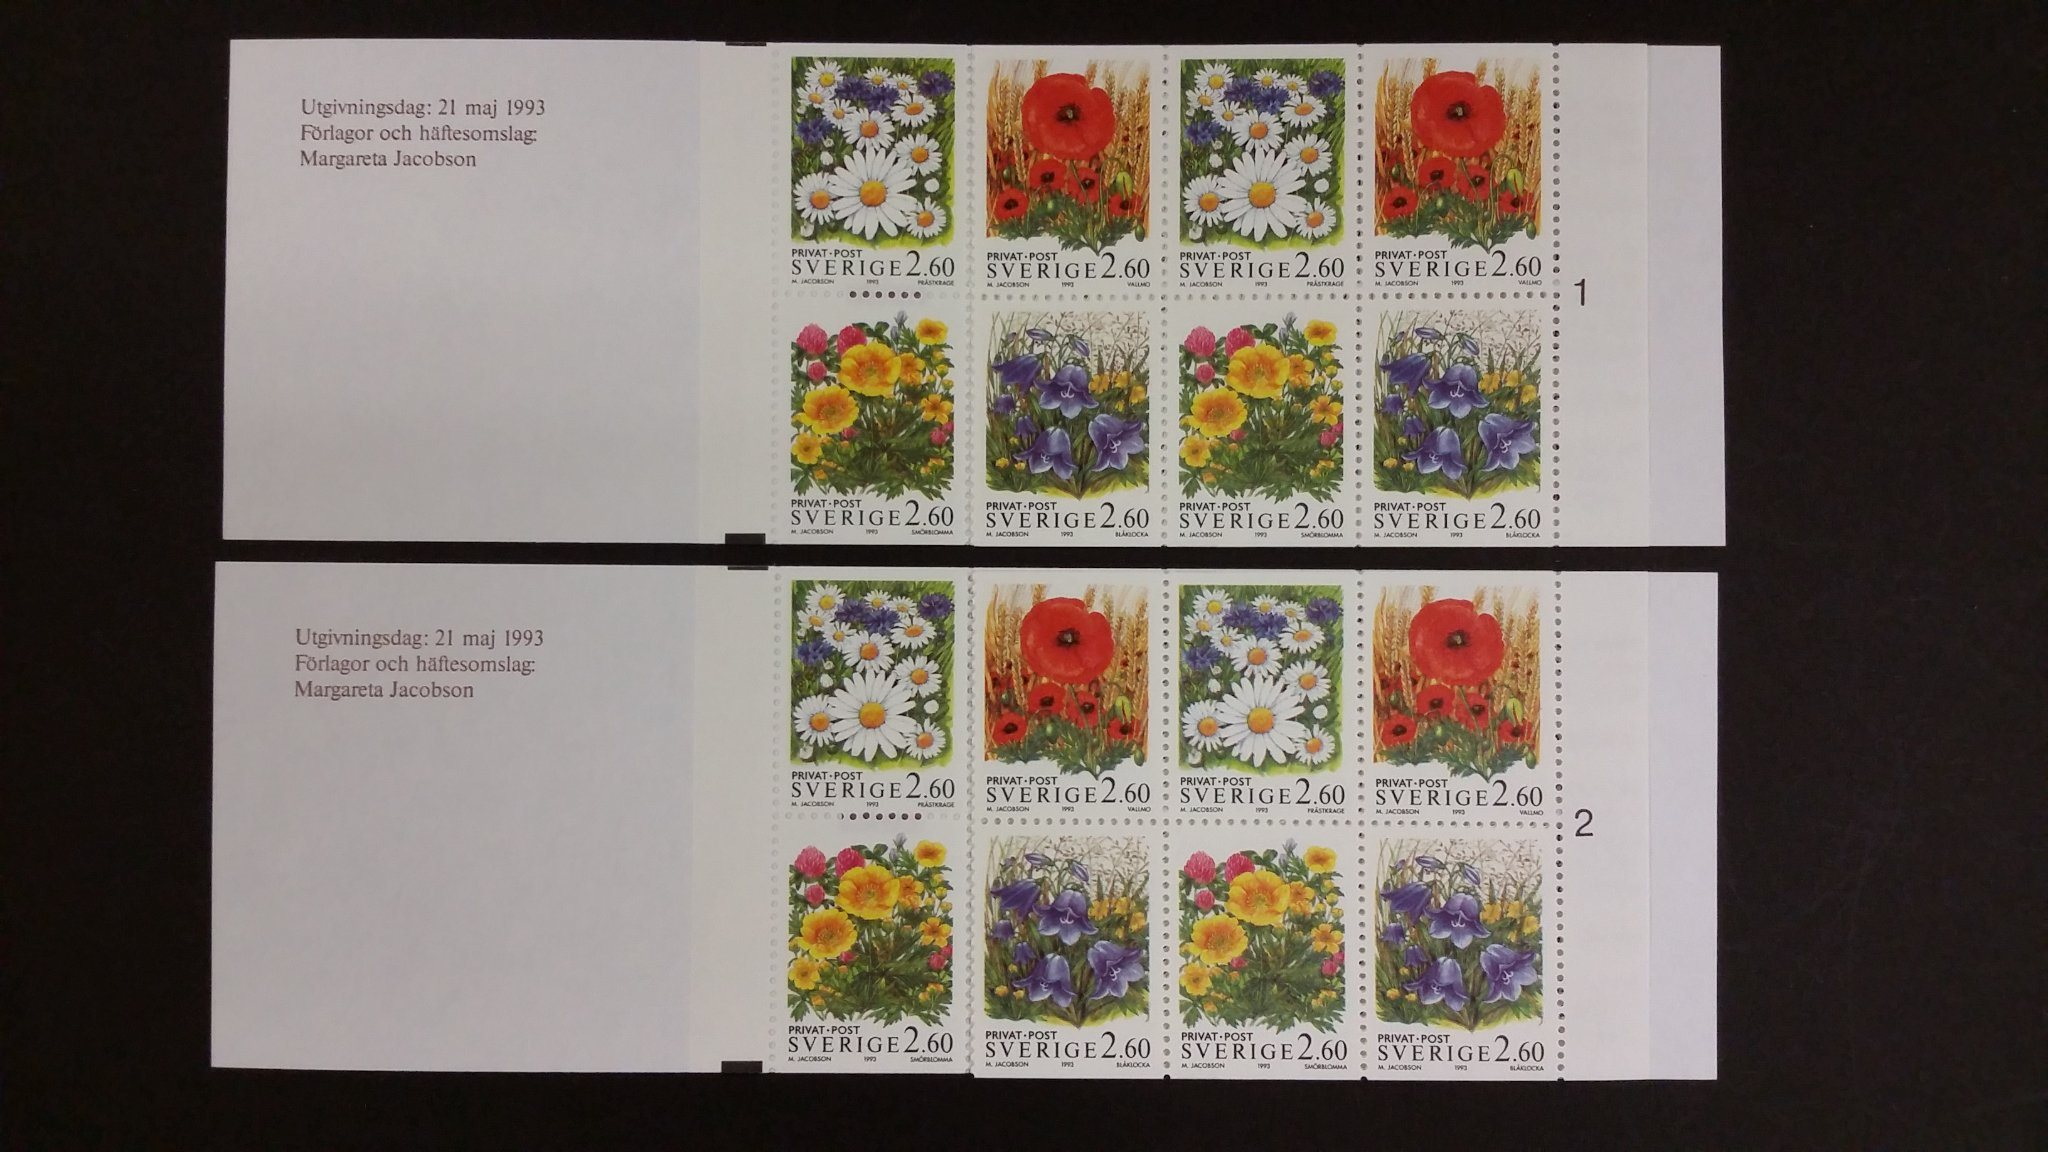 H 436 H436 Sommar - Blommor 1993 DUBBEL x2 hafte cyl1 cyls 2 + RT